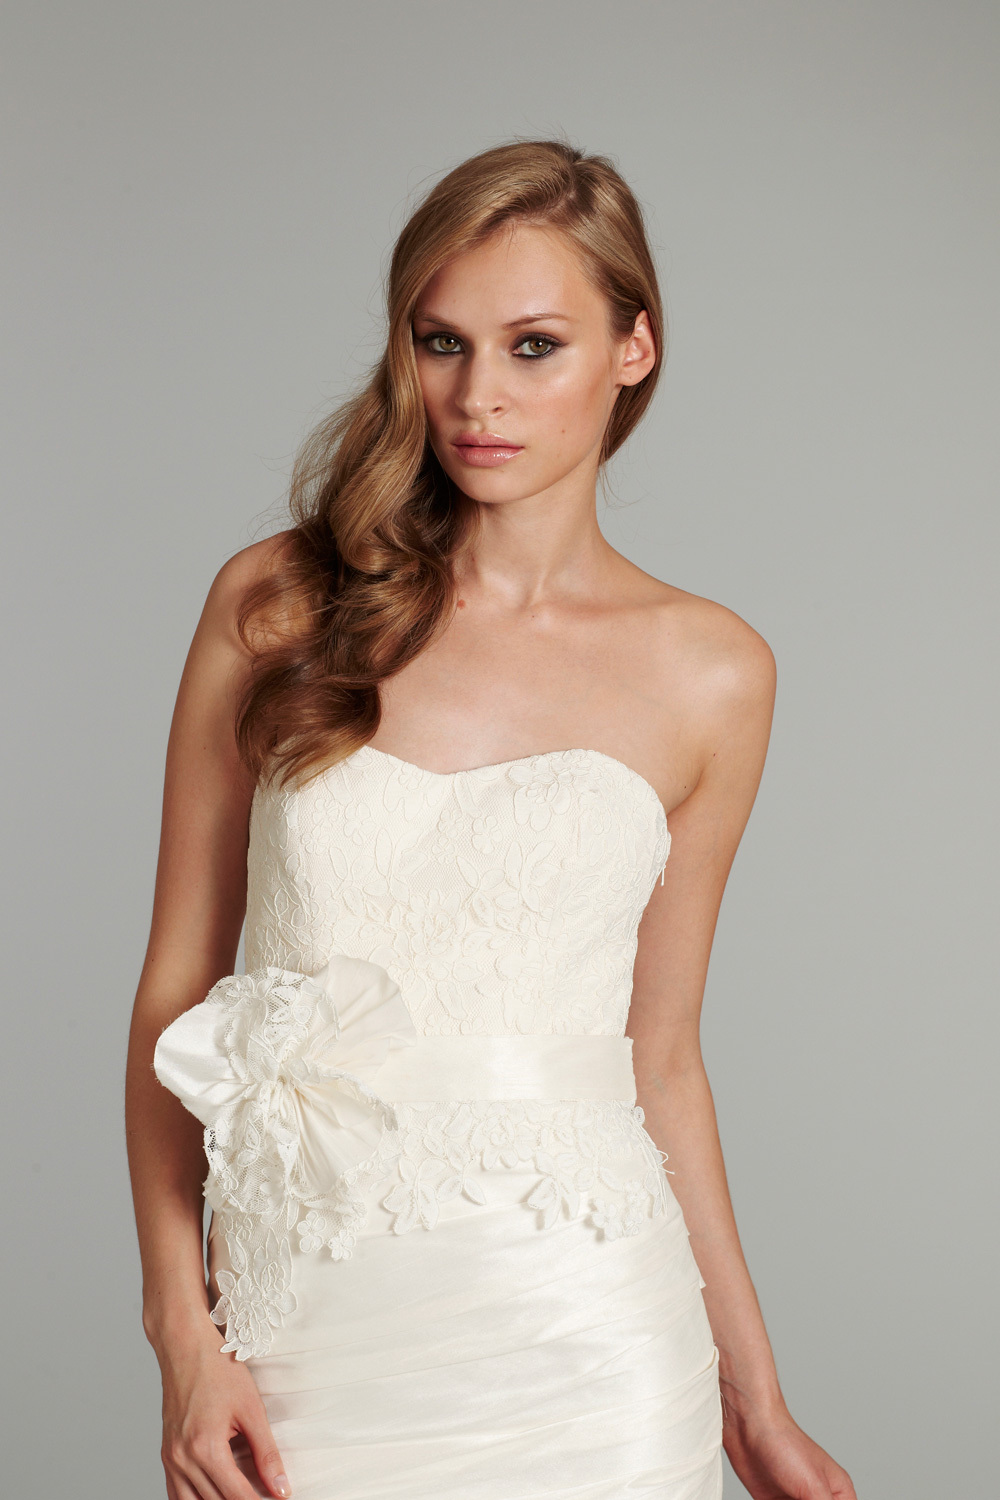 Bridal-gown-wedding-dress-jlm-hayley-paige-fall-2012-lulu-detail.full